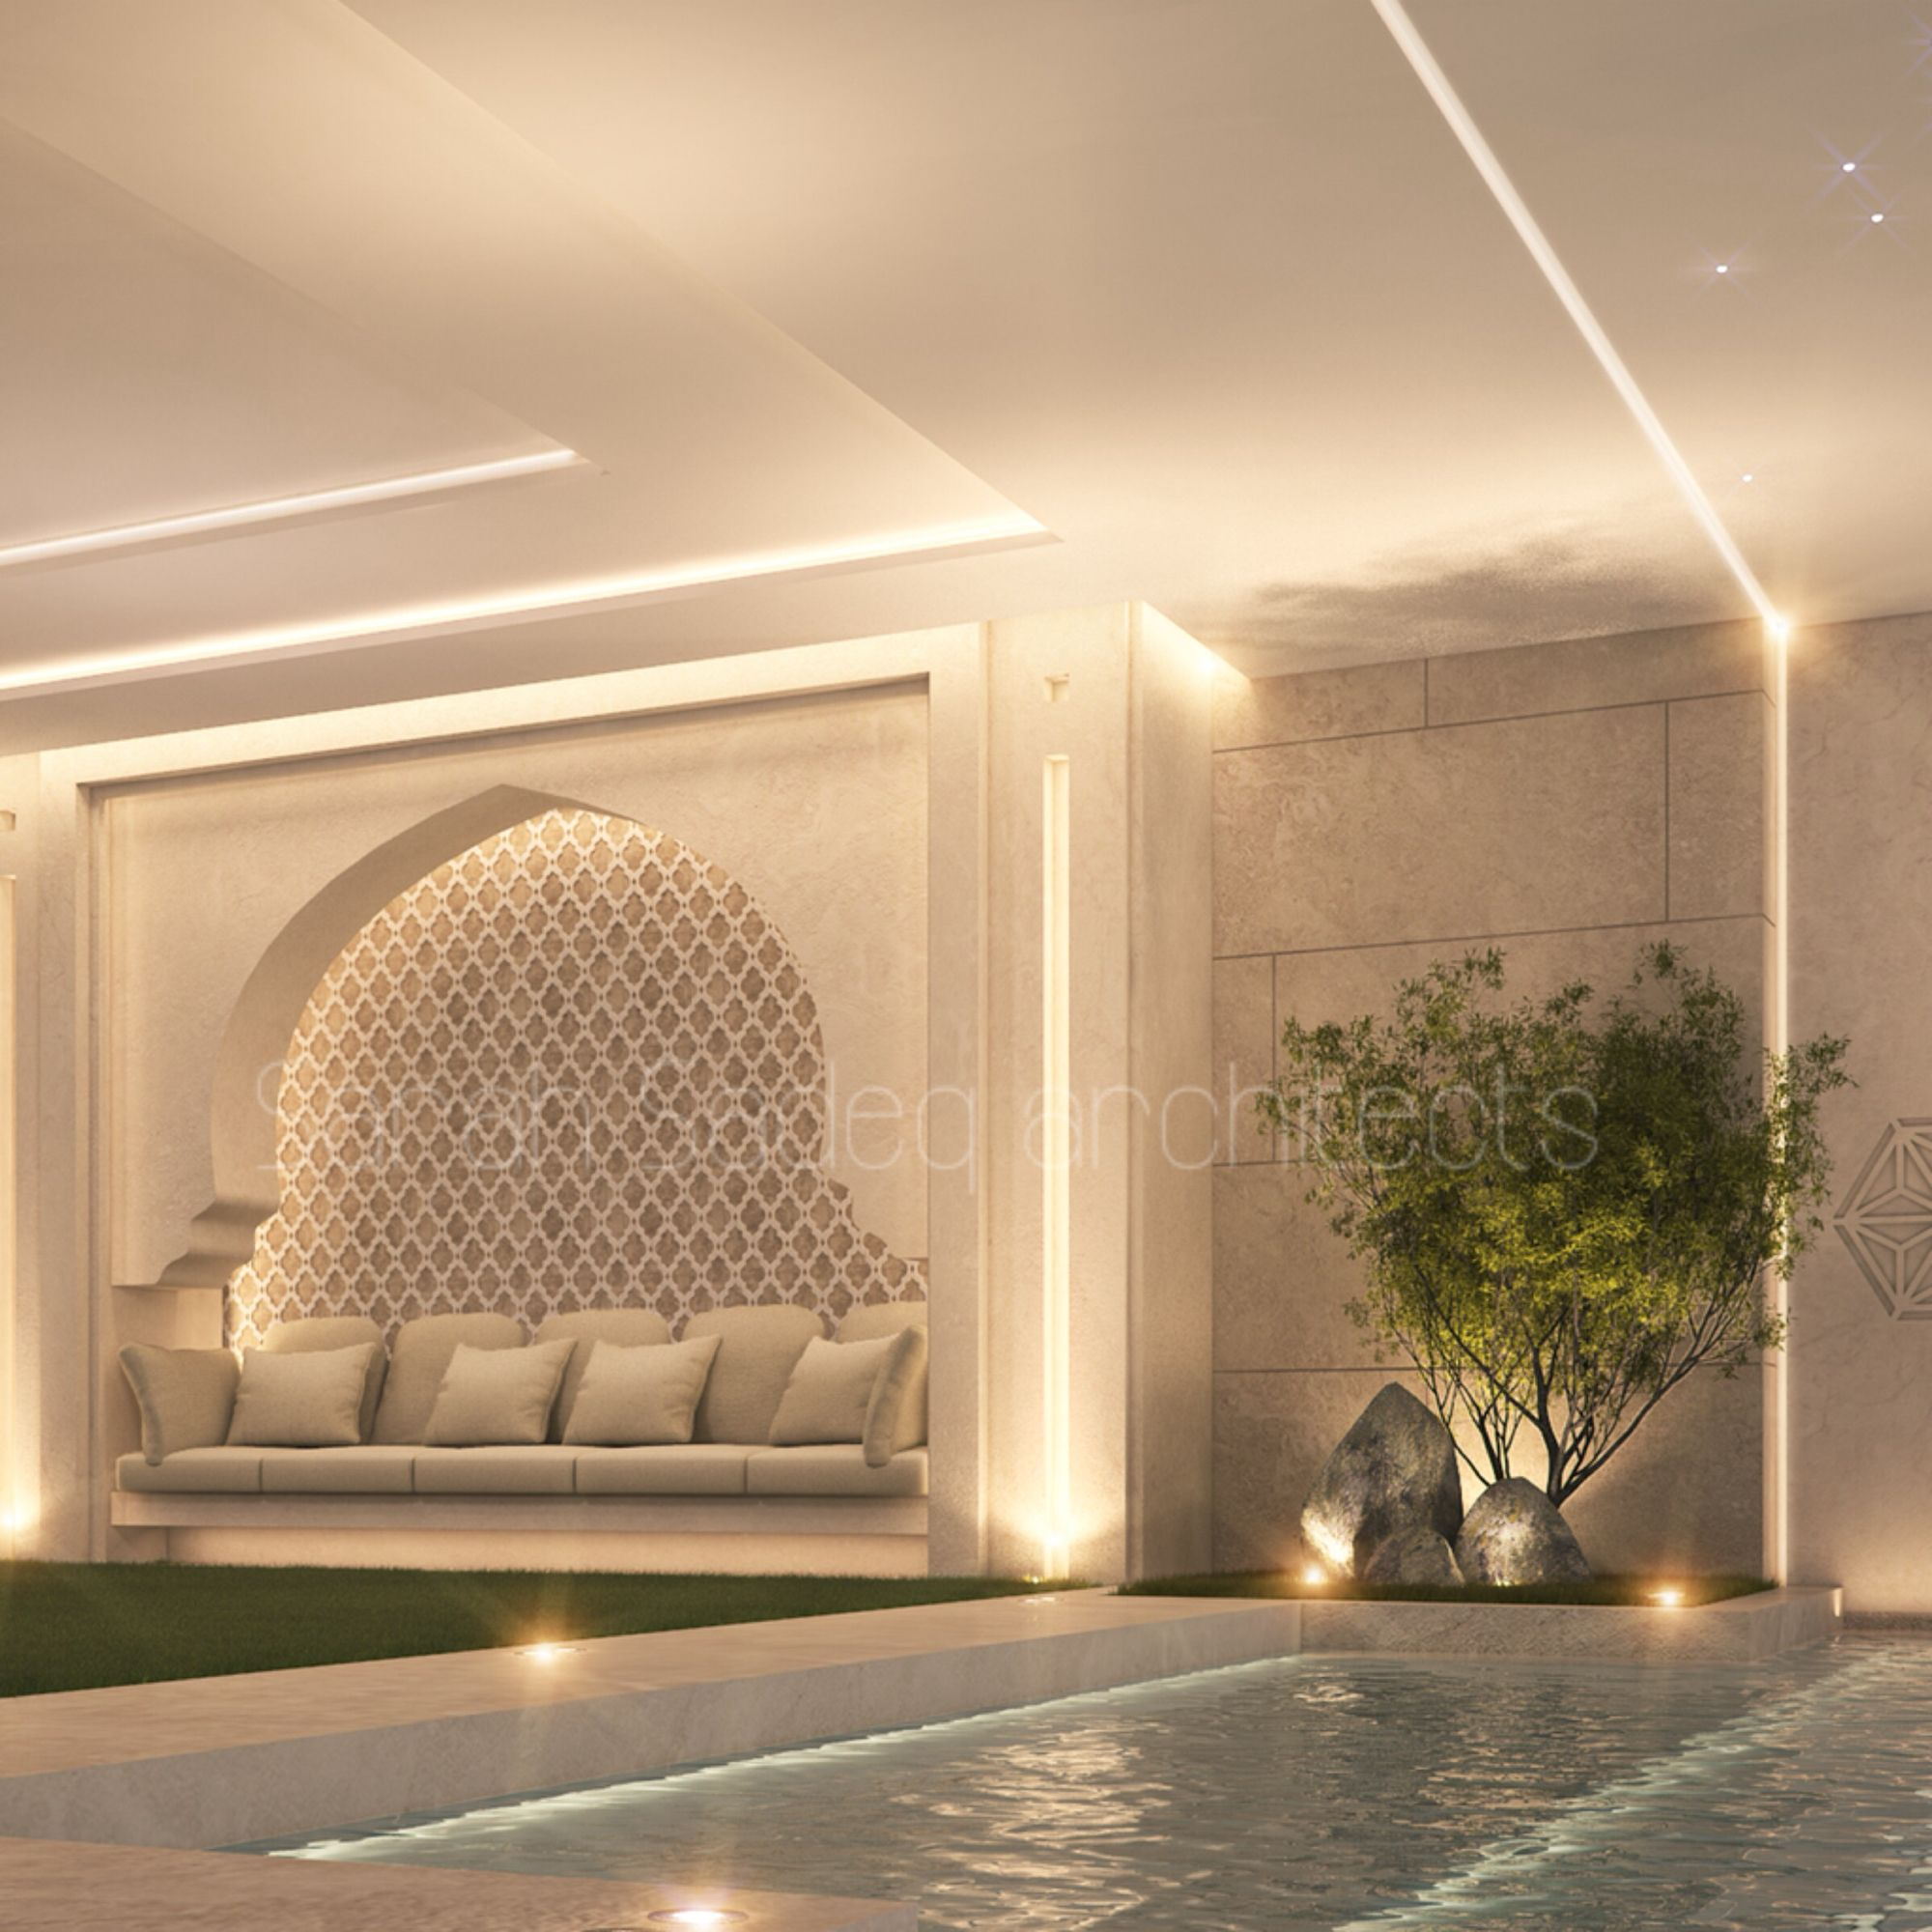 Private Villa Sarah Sadeq Architects Kuwait: Pool Seating Private Villa Kuwait Sarah Sadeq Architects